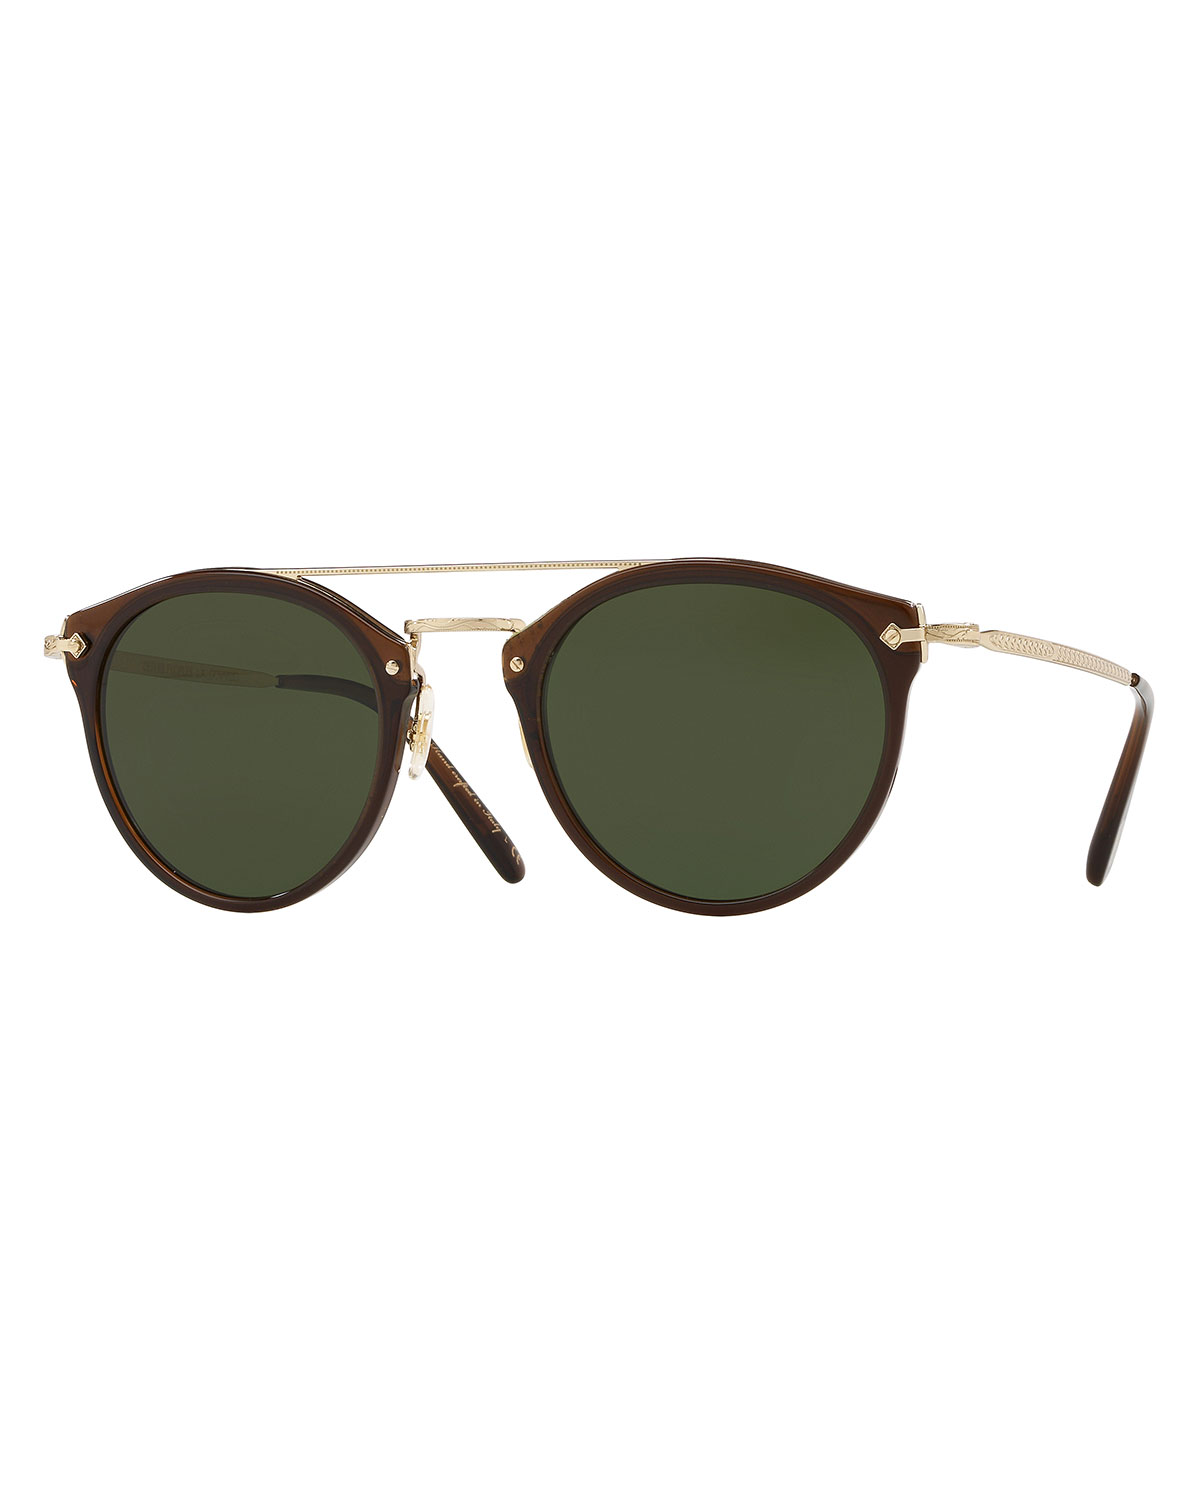 b466d19b372 Oliver Peoples Men s Row Remick Round Metal Acetate Sunglasses ...